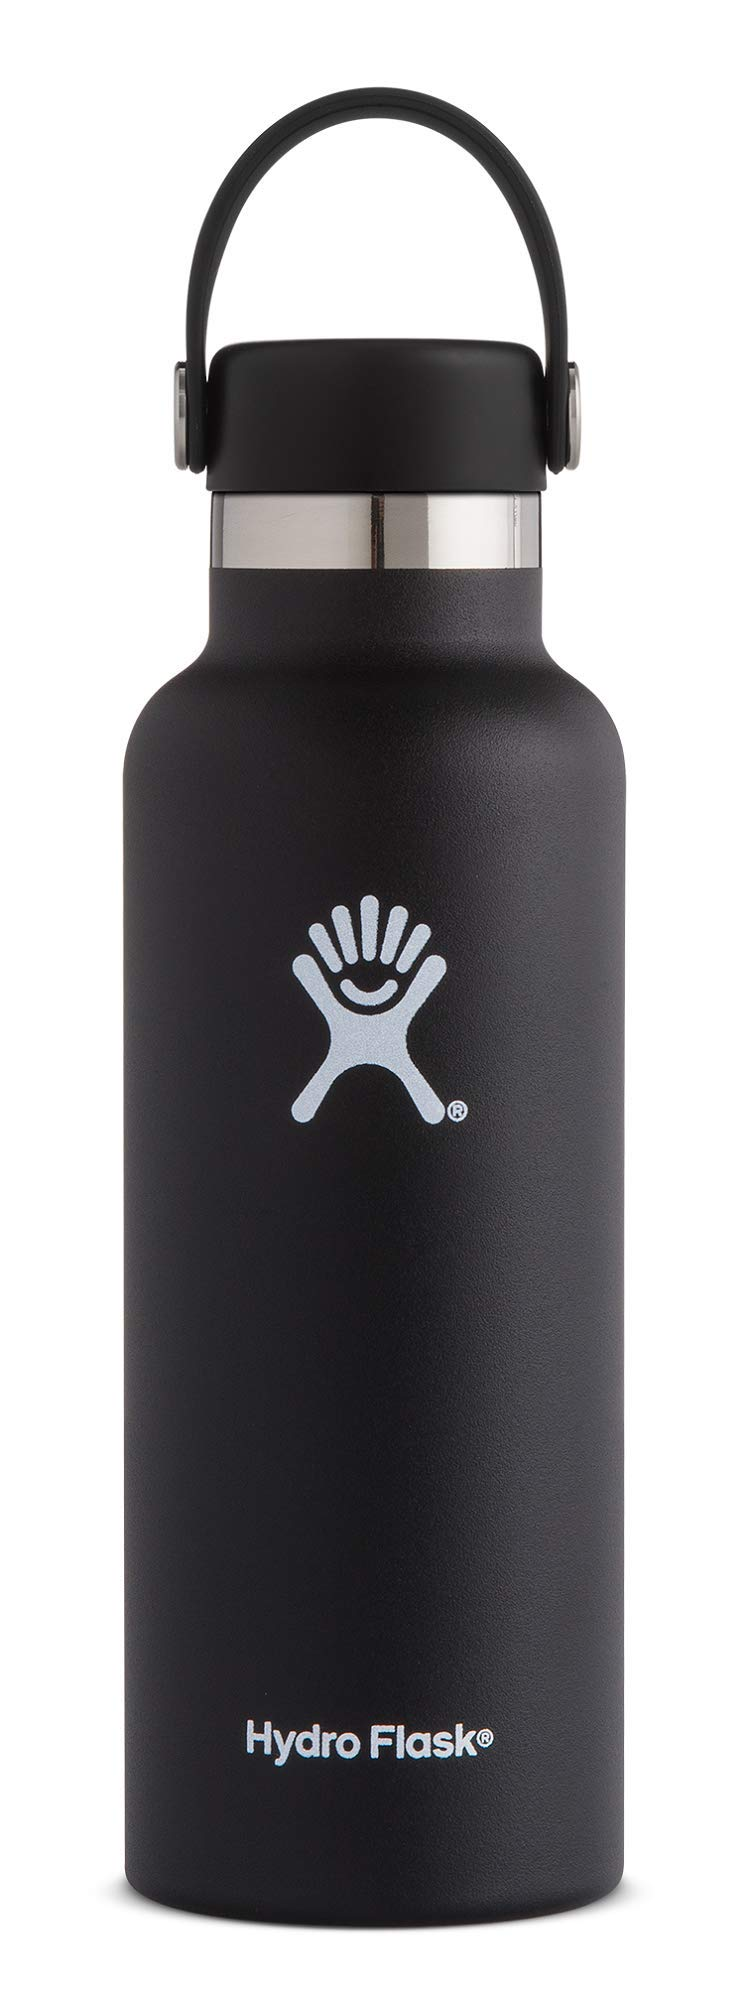 Hydro Flask 18 oz Double Wall Vacuum Insulated Stainless Steel Leak Proof Sports Water Bottle, Standard Mouth with BPA Free Flex Cap, Black by Hydro Flask